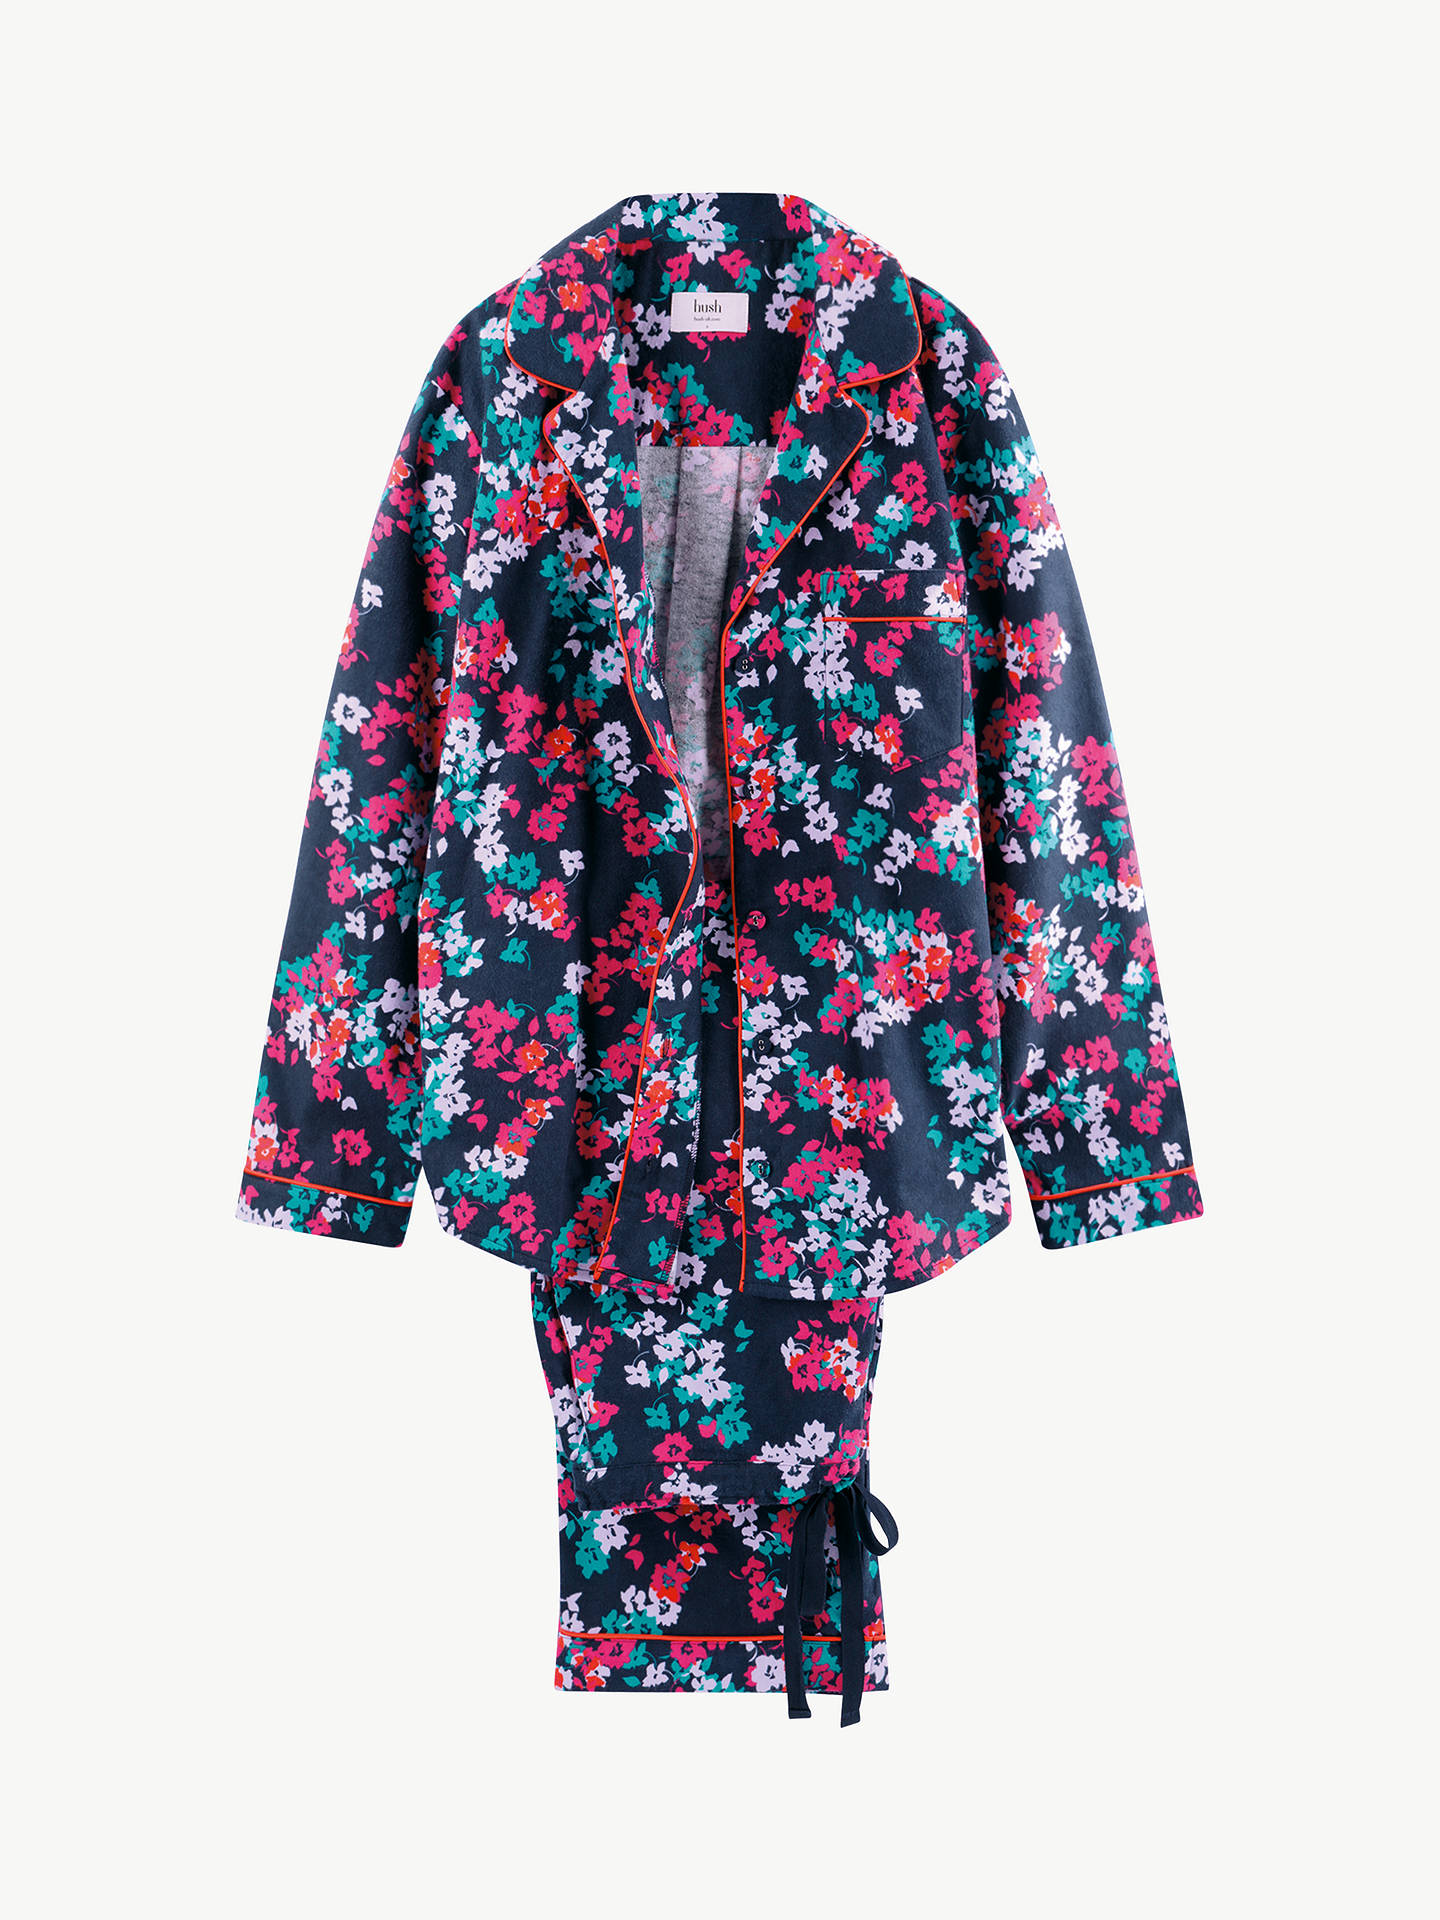 Buy hush Silhouette Floral Piped Flannel Pyjama Set, Midnight/Multi, XS Regular Online at johnlewis.com